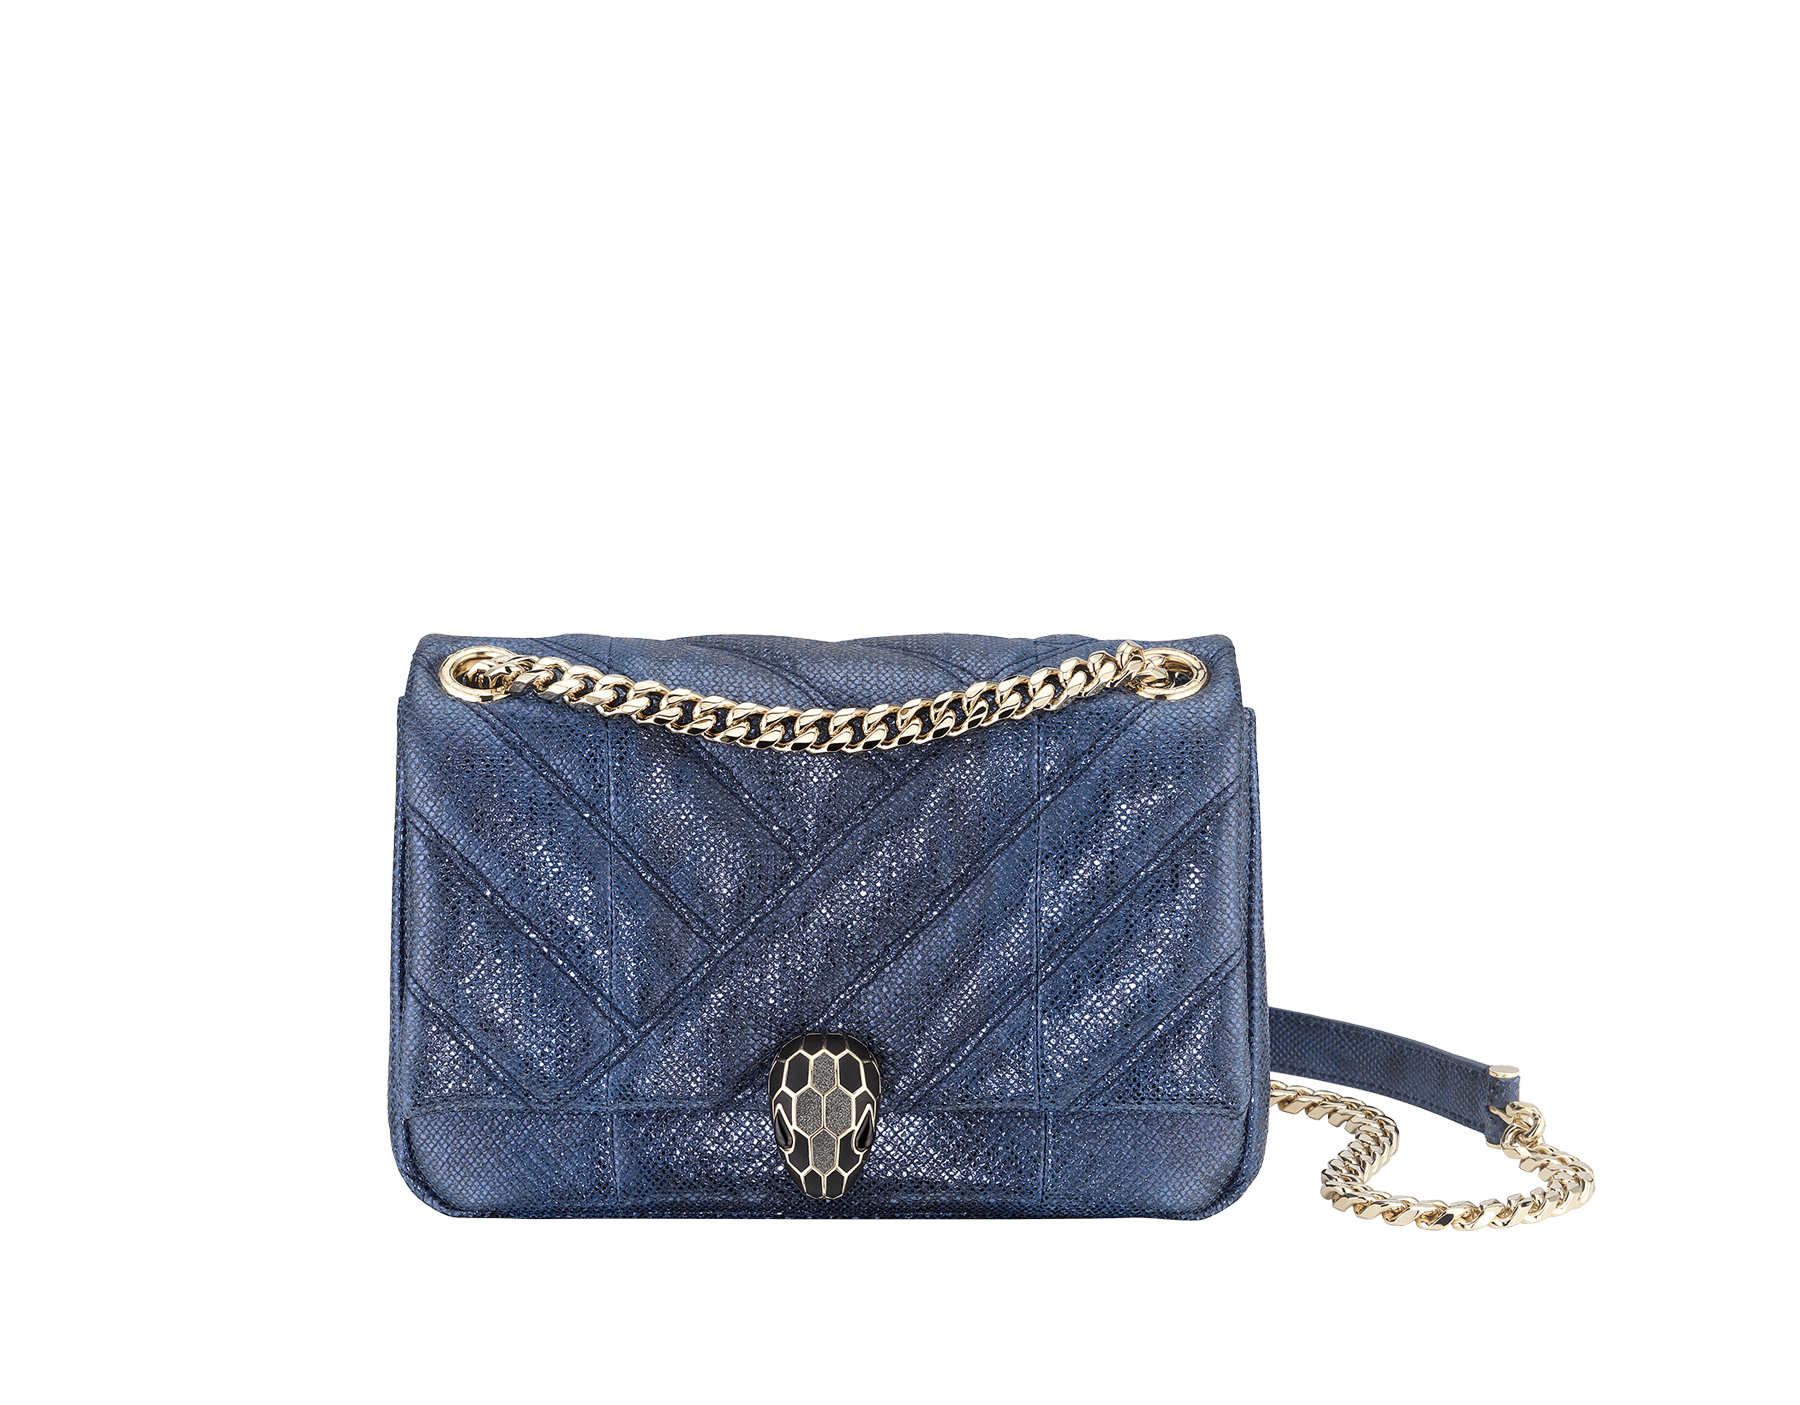 """Serpenti Cabochon"" shoulder bag in soft, quilted, metallic Midnight Sapphire blue karung skin with graphic motif and black nappa leather inner lining. Alluring snakehead closure in light gold-plated brass enriched with matte black and glittery Hawk's Eye gray enamel and black onyx eyes. 290238 image 1"